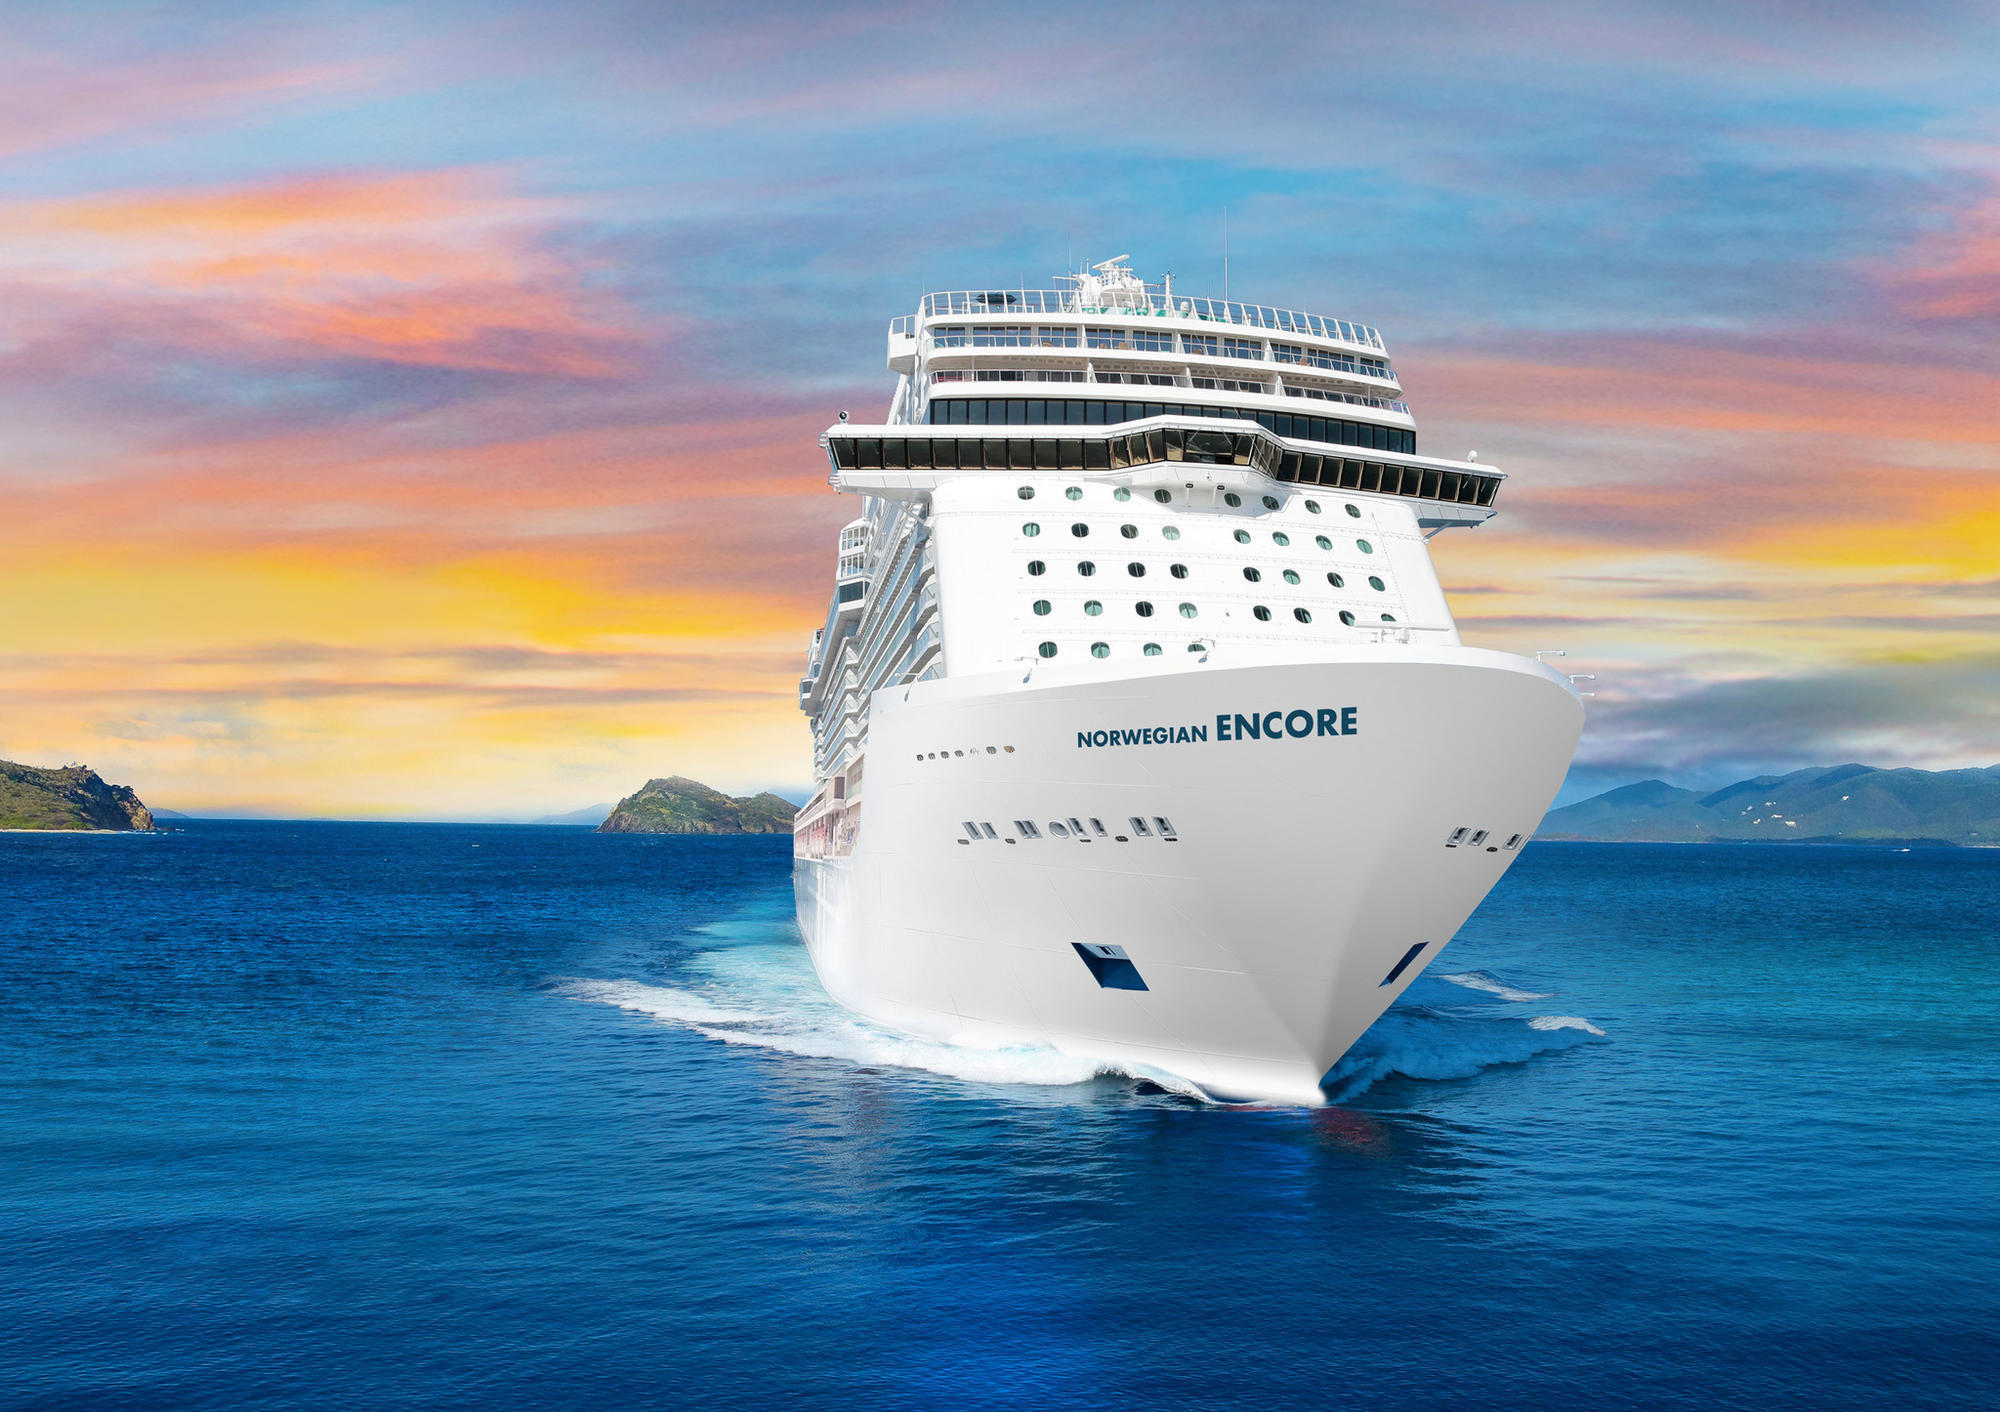 Norwegian Encore cruise ship to call Miami home - Orlando ...